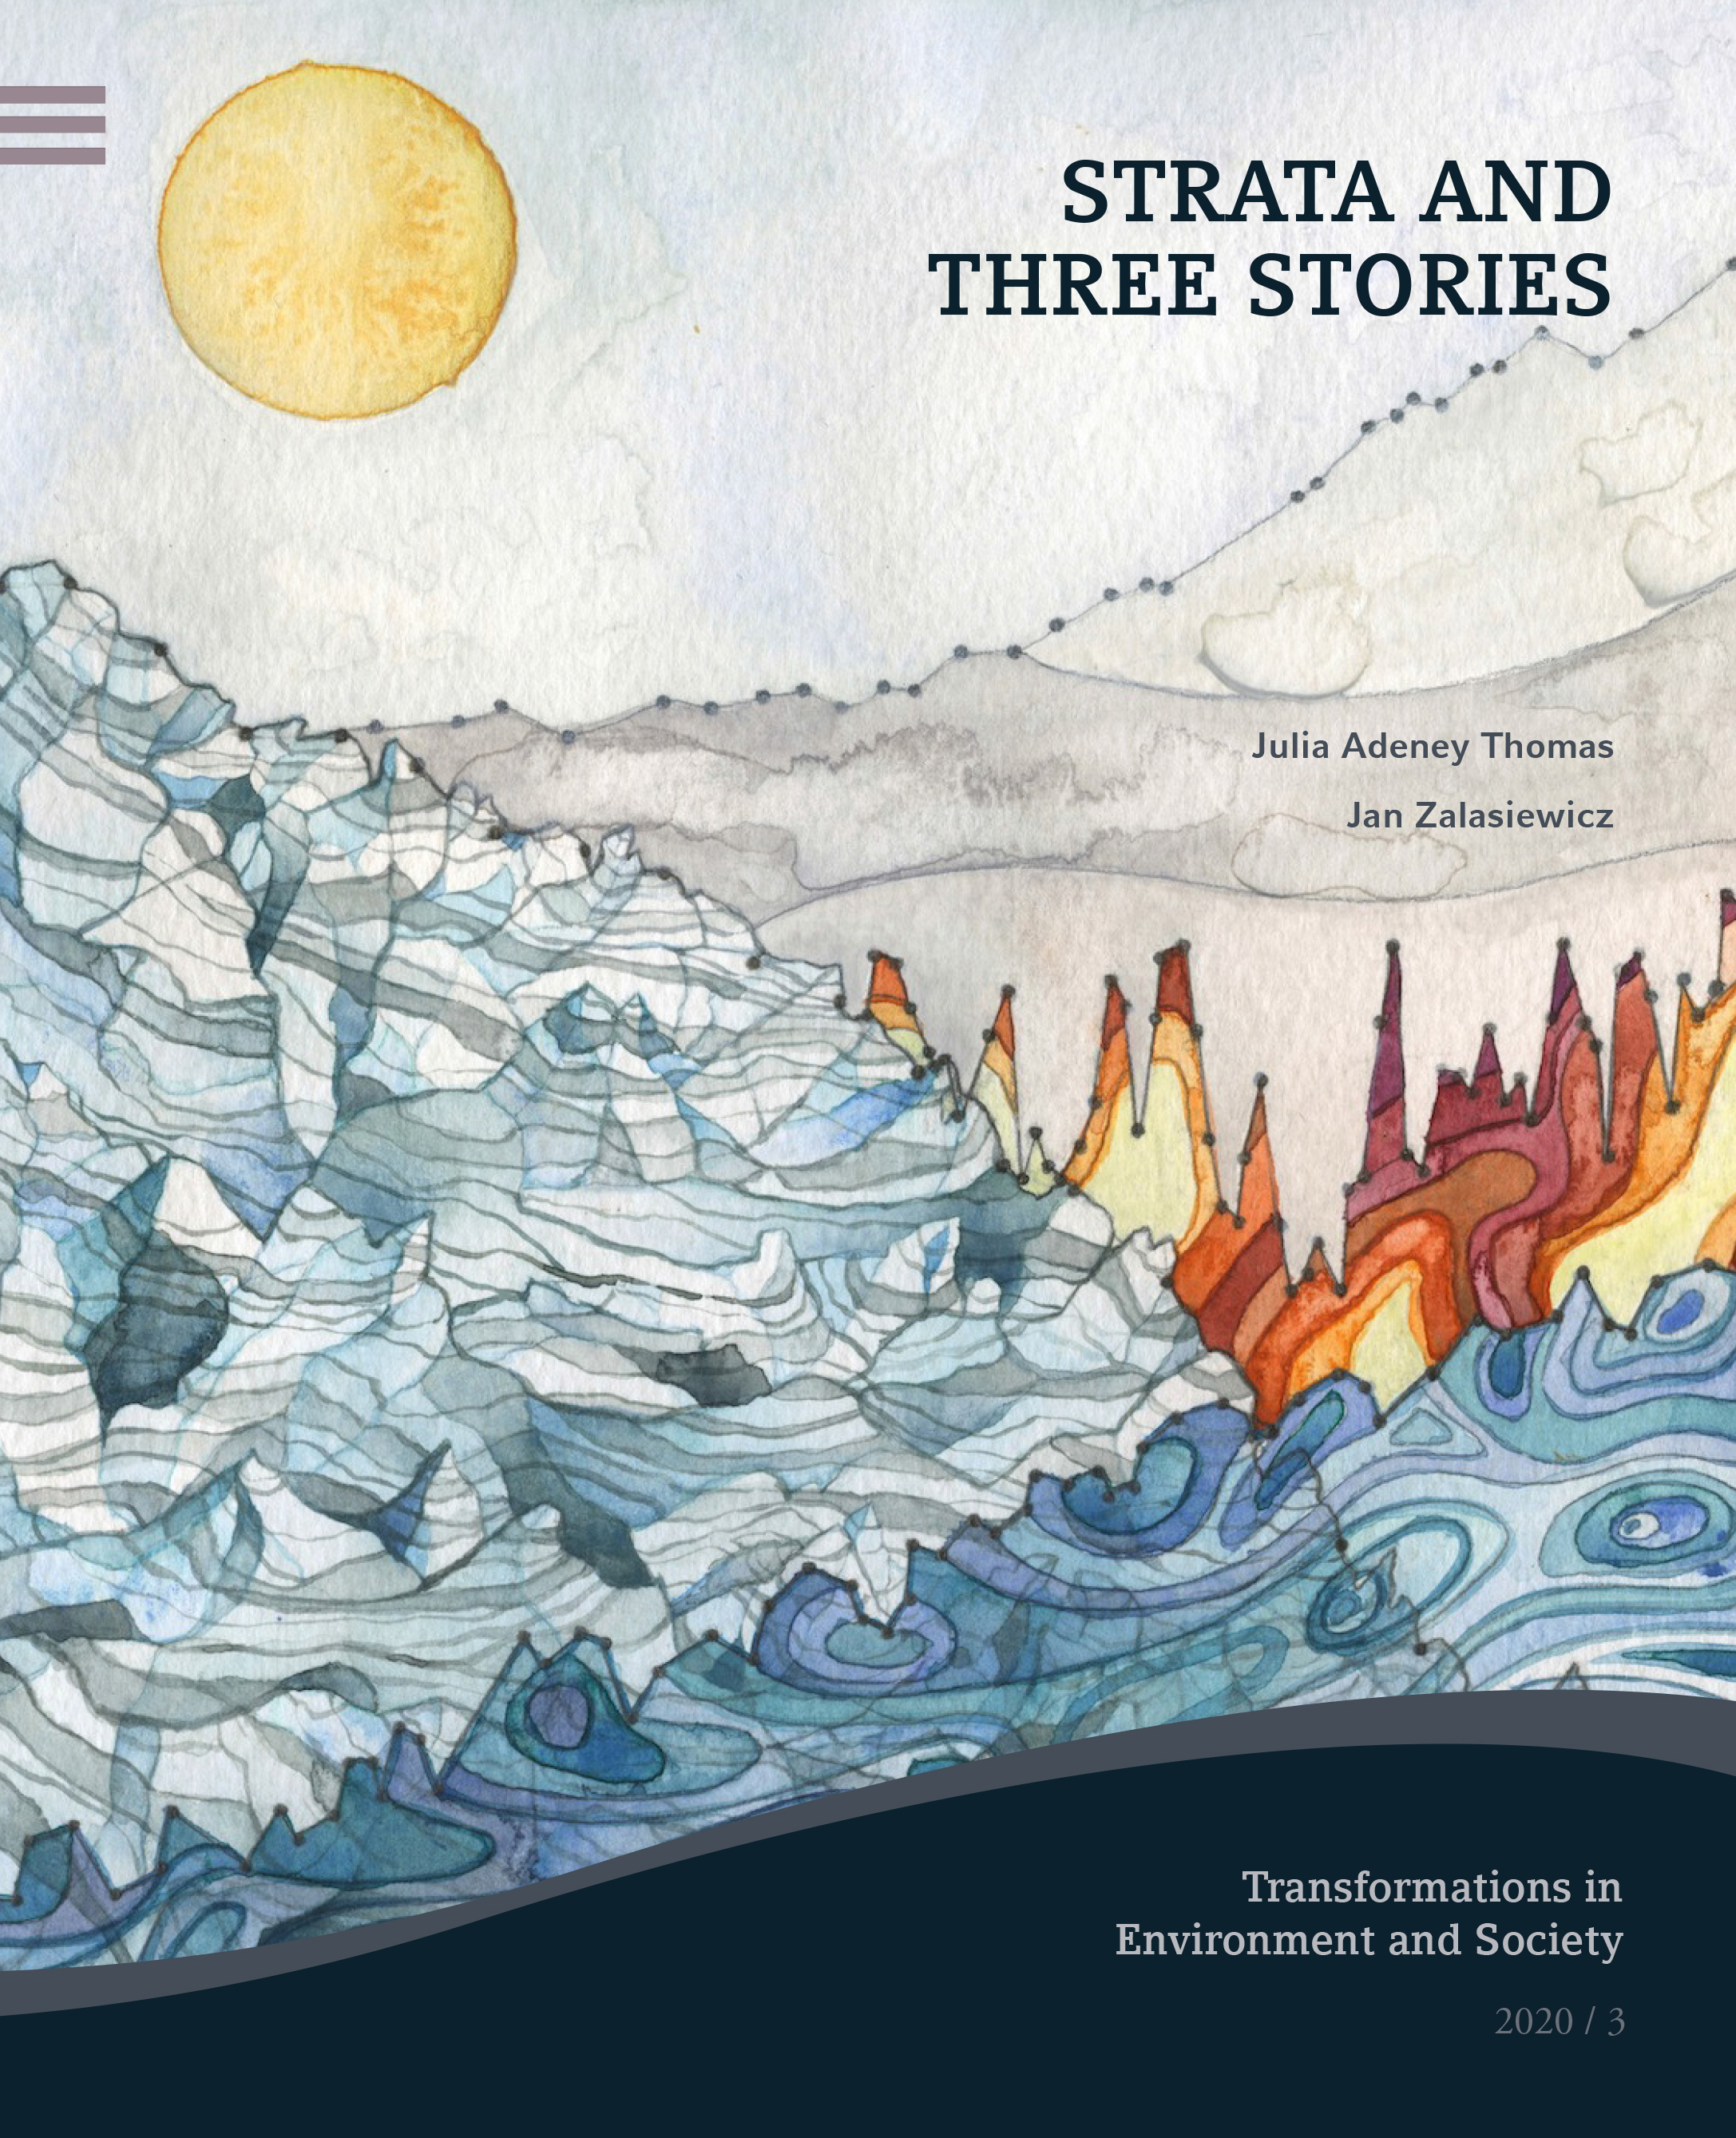 FRONTCOVER_2020_i3_Strata_and_Three_Stories